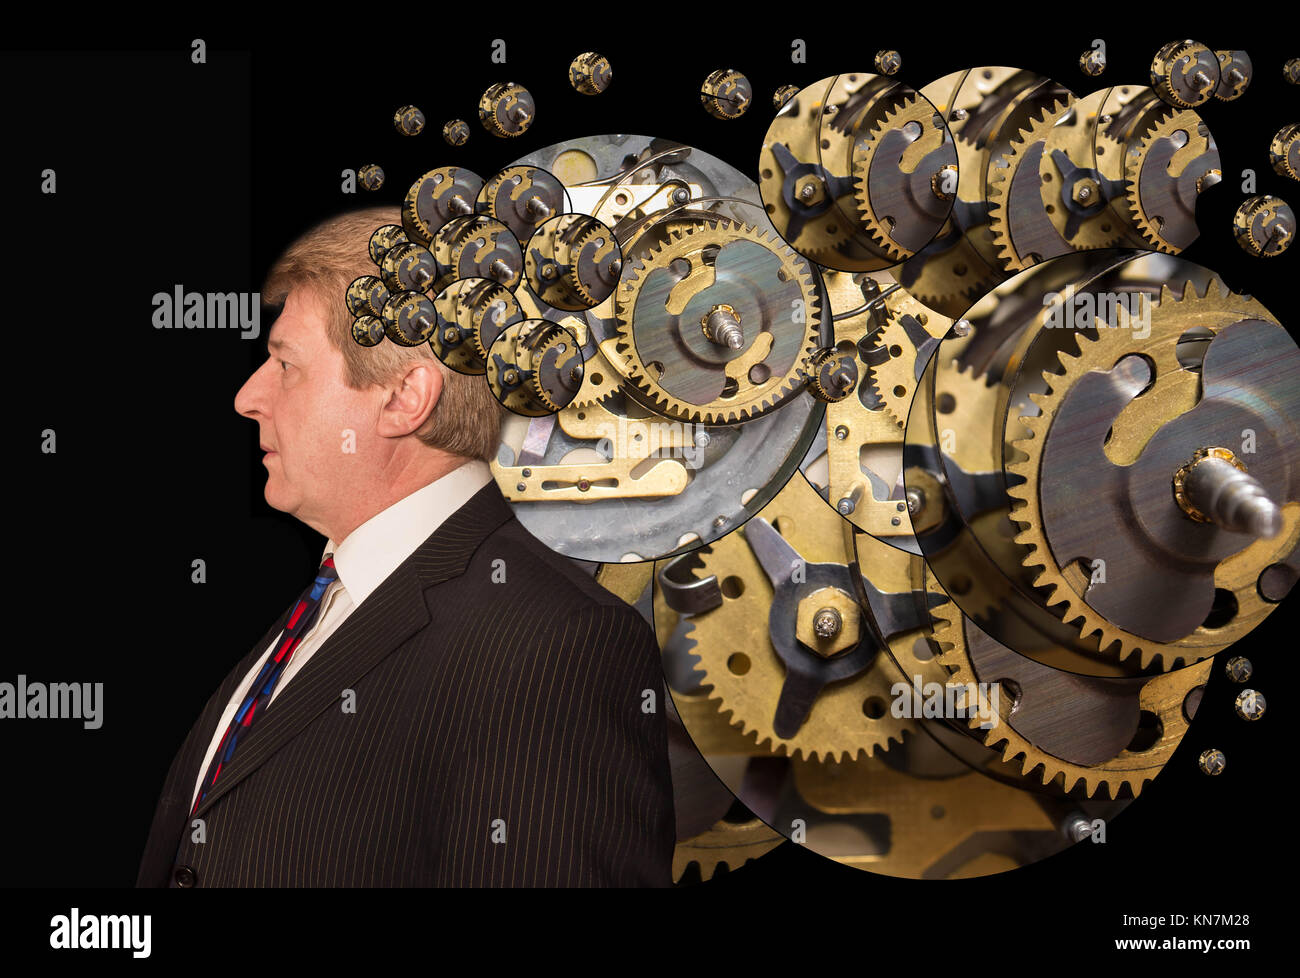 The man with a brain with machine parts - Stock Image